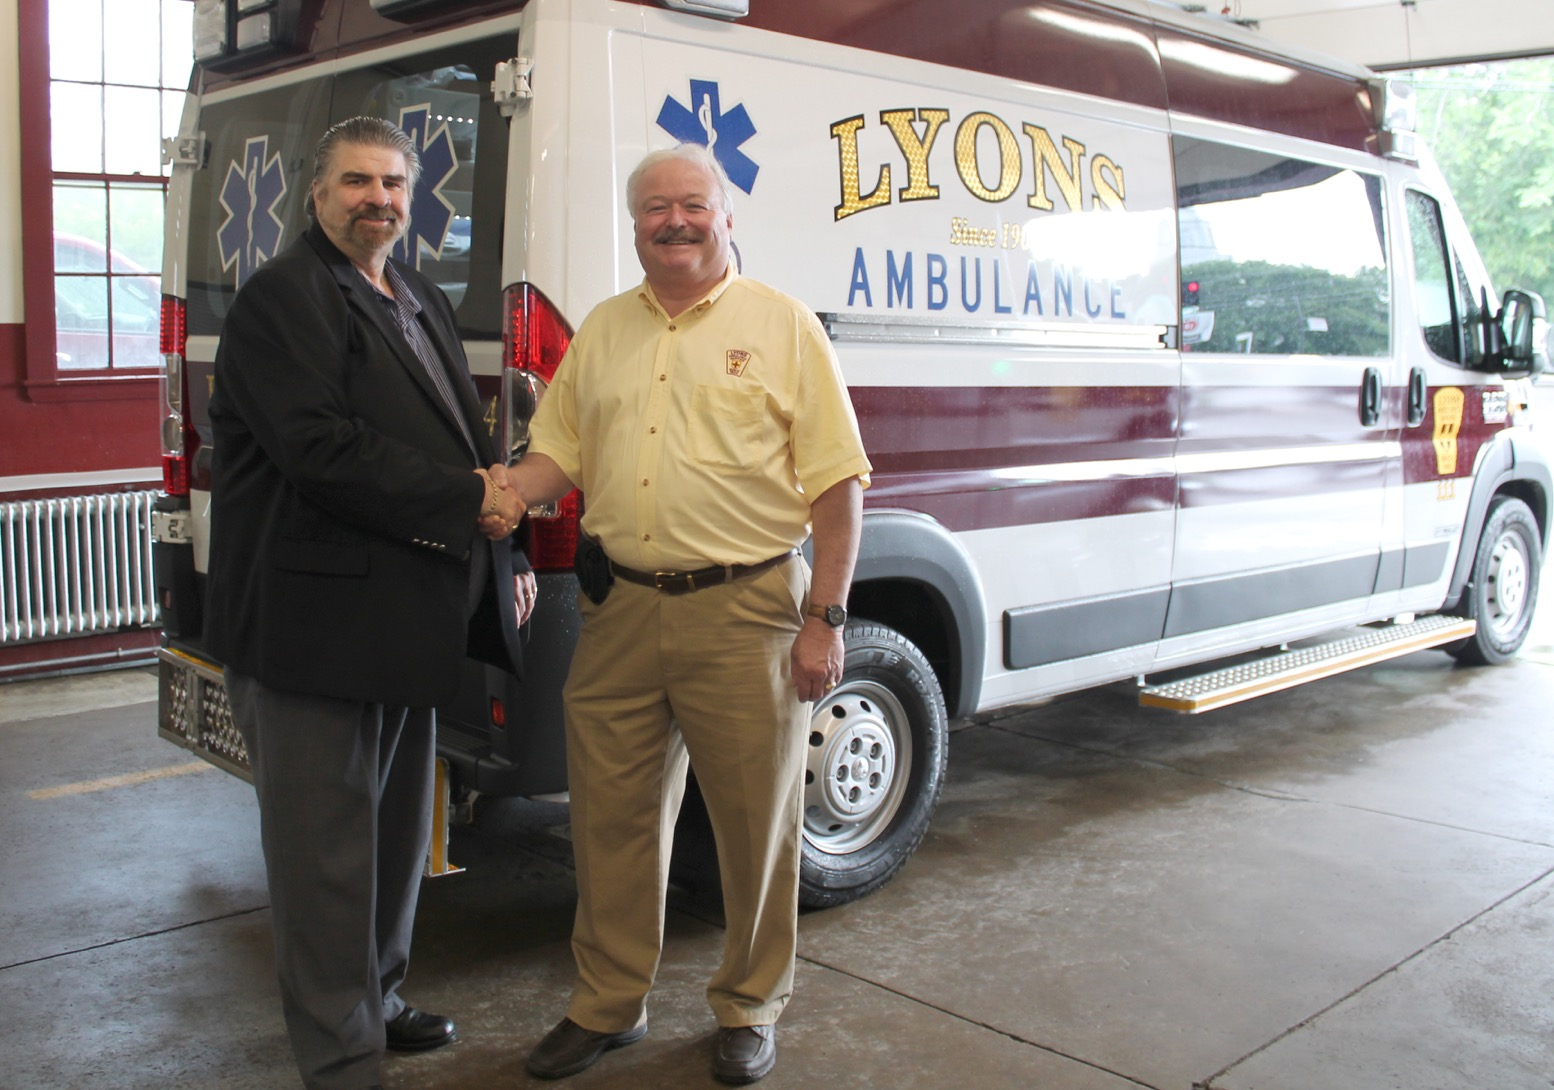 Kevin Lyons, fourth generation at the helm of Lyons Ambulance Service (right) accepts keys to America's first Malley Crossover Ambulance from the manufacturer's President & CEO, Terry Malley.